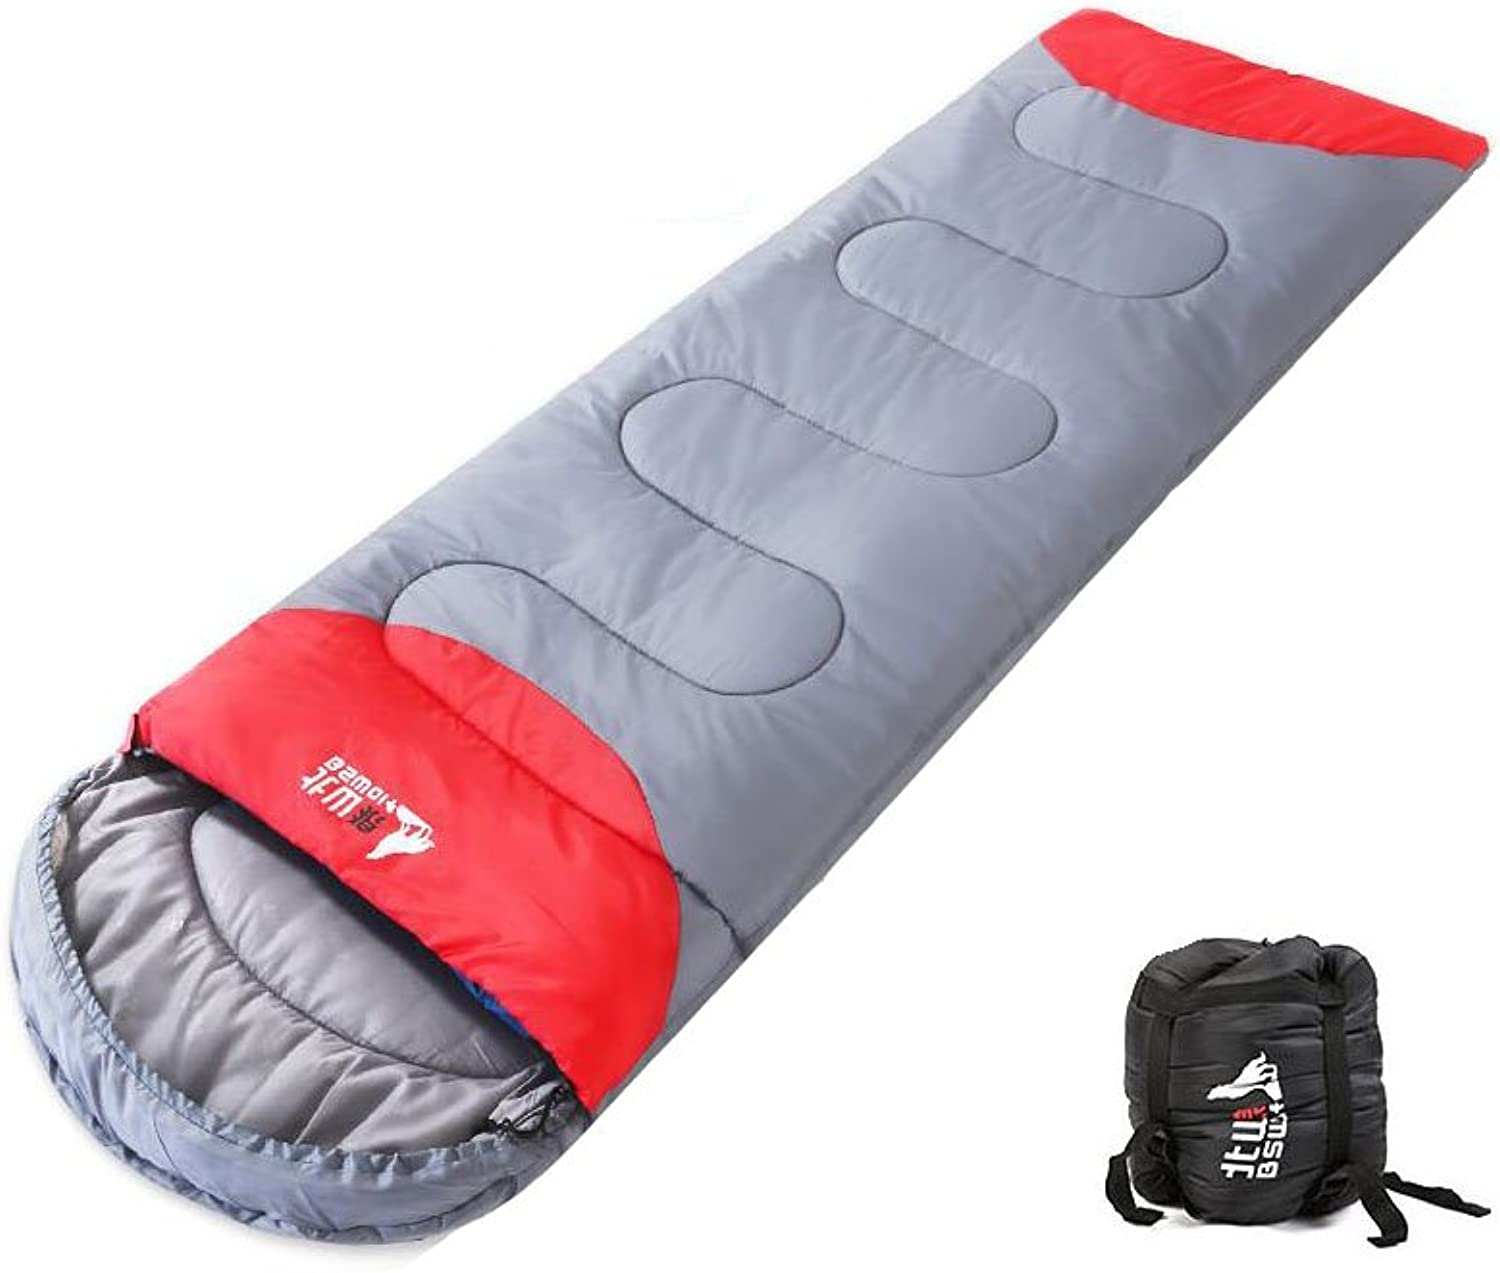 Sleeping Bag – Envelope Lightweight Portable, Waterproof, Comfort with Compression SackGreat for Spring Fall Traveling, Camping, Hiking, Outdoor Activities Adults&Kids